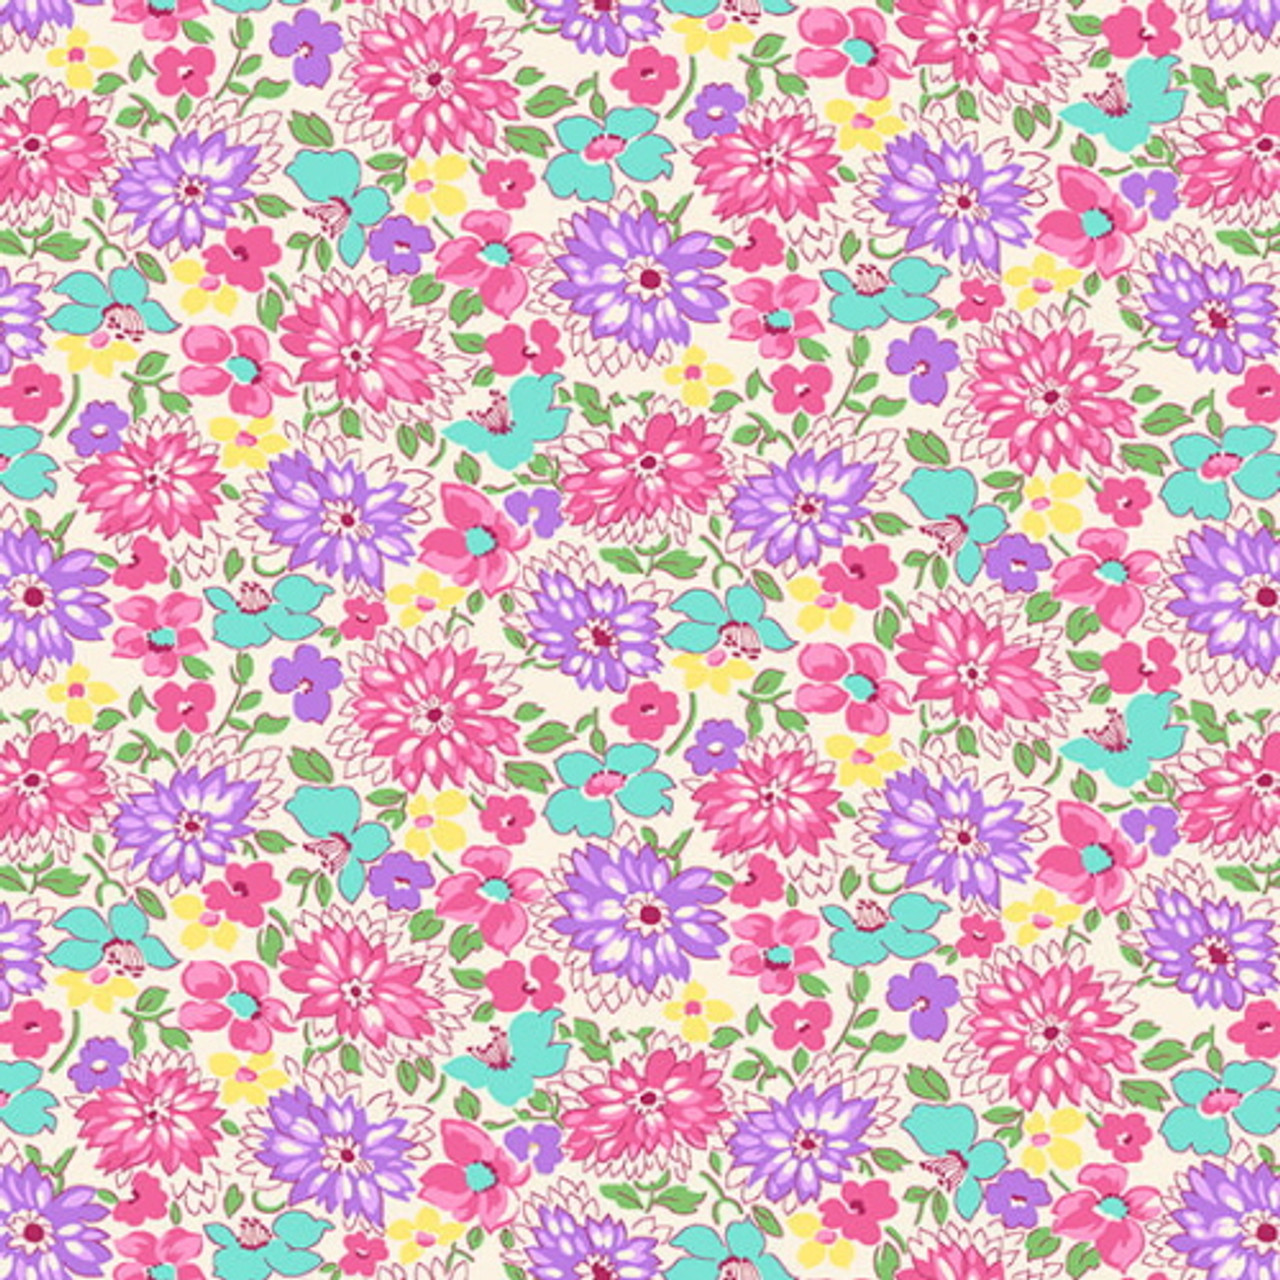 30s Floral Prints in Pink Yellow and Green Fat Quarter Bundle Nana Mae II for Henry Glass